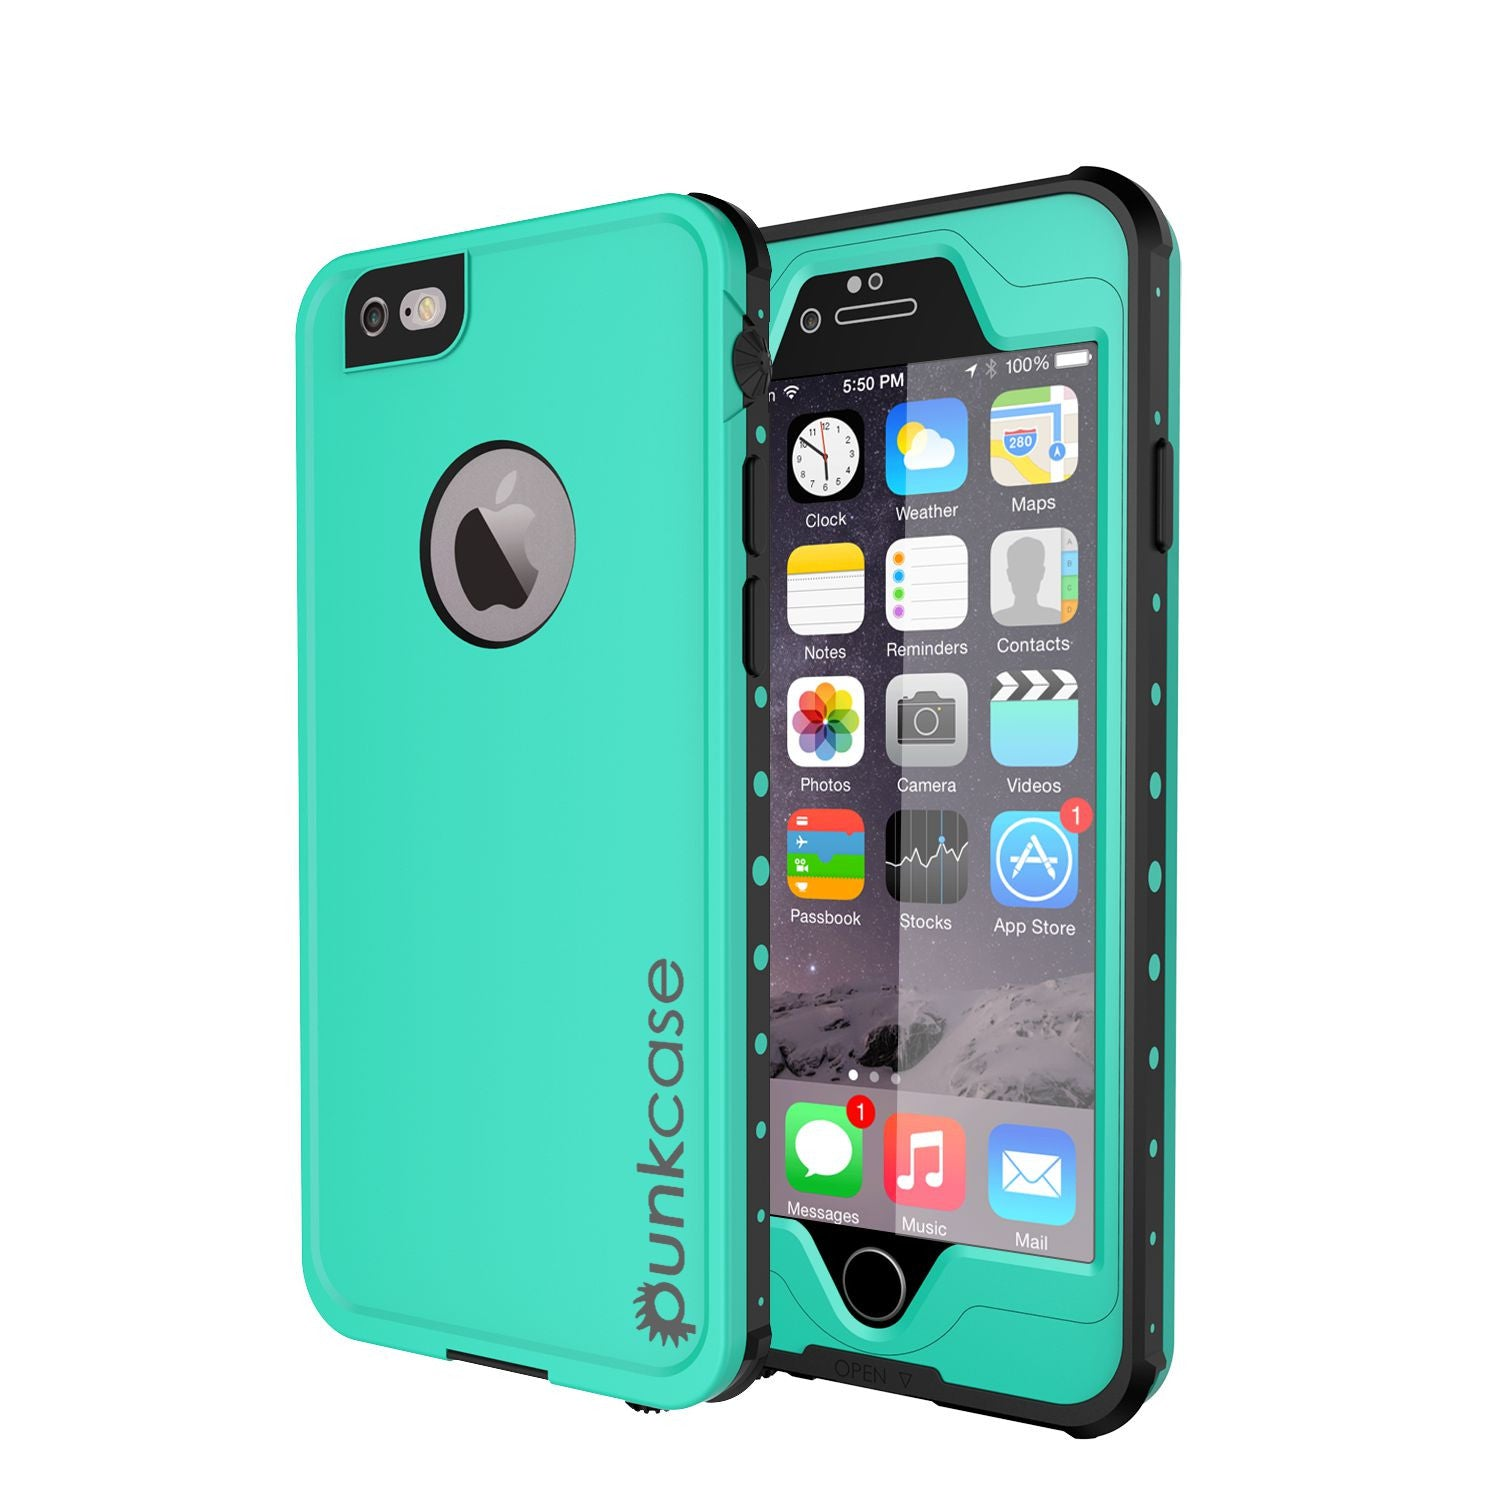 iPhone 6S+/6+ Plus Waterproof Case, PUNKcase StudStar Teal w/ Attached Screen Protector | Warranty